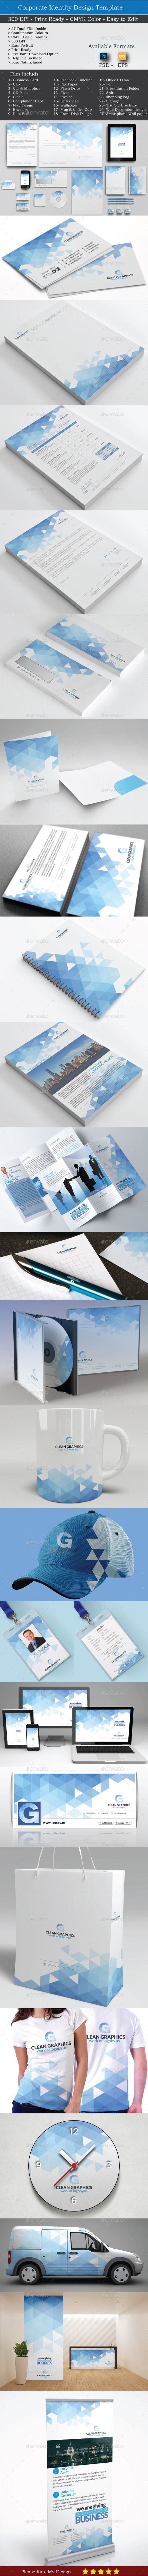 Corporate Identity Set-2 - Stationery Print Templates